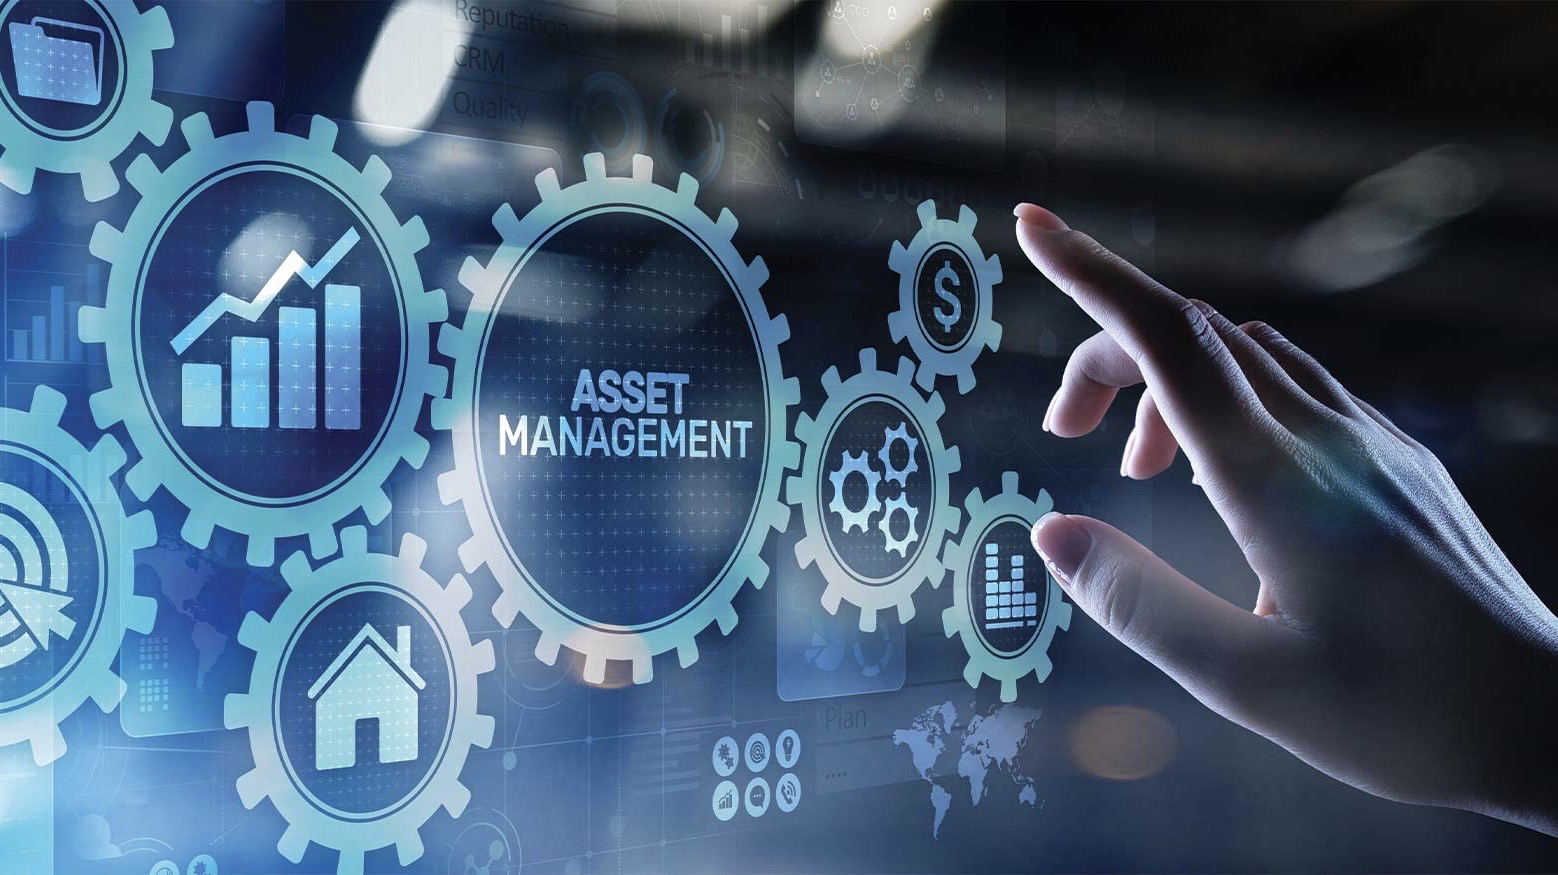 EVOLUZIONE IT: Asset Management